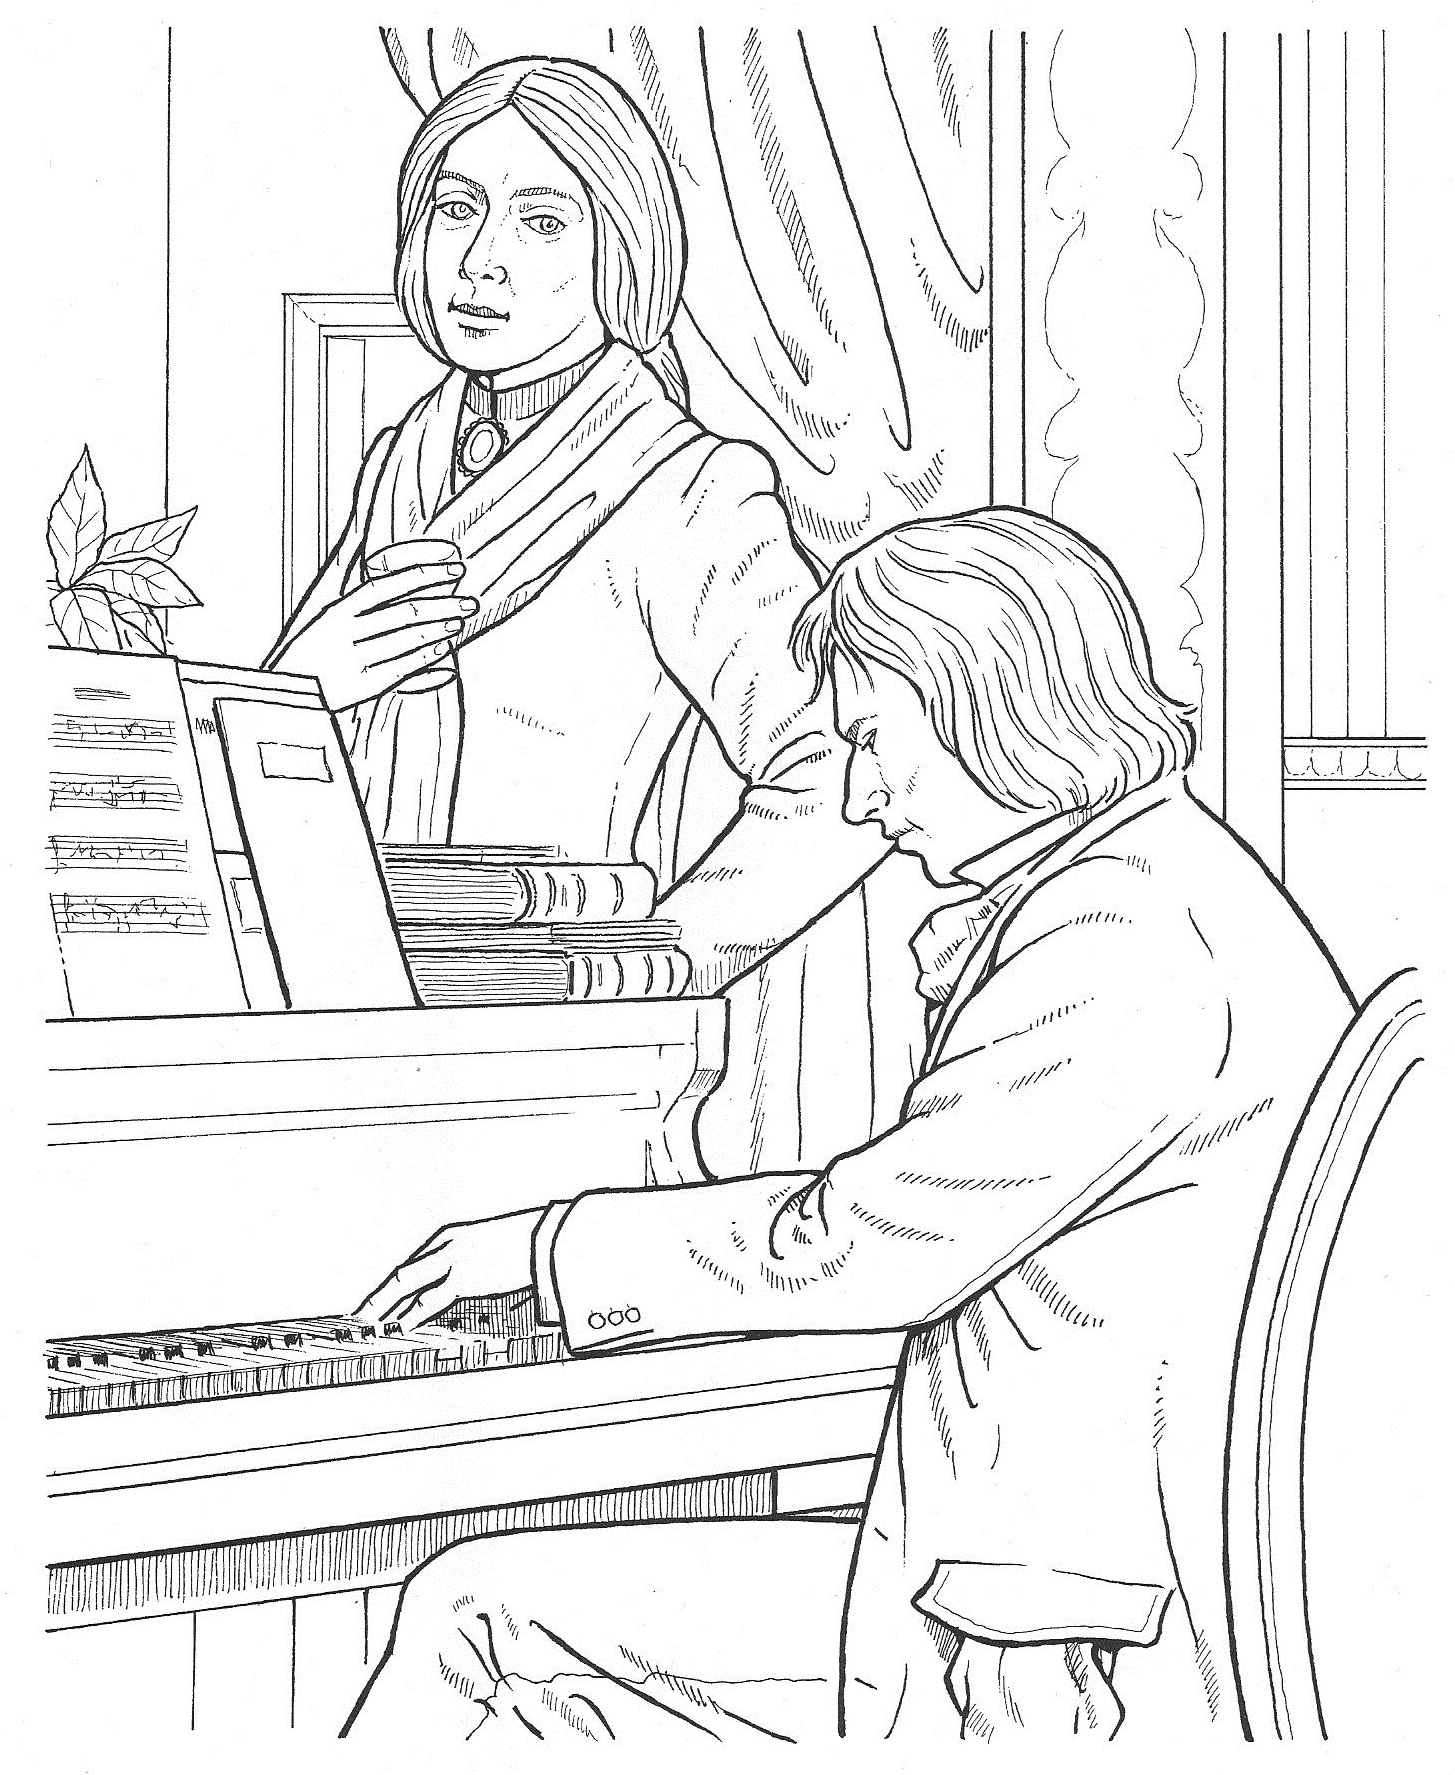 Composer Coloring